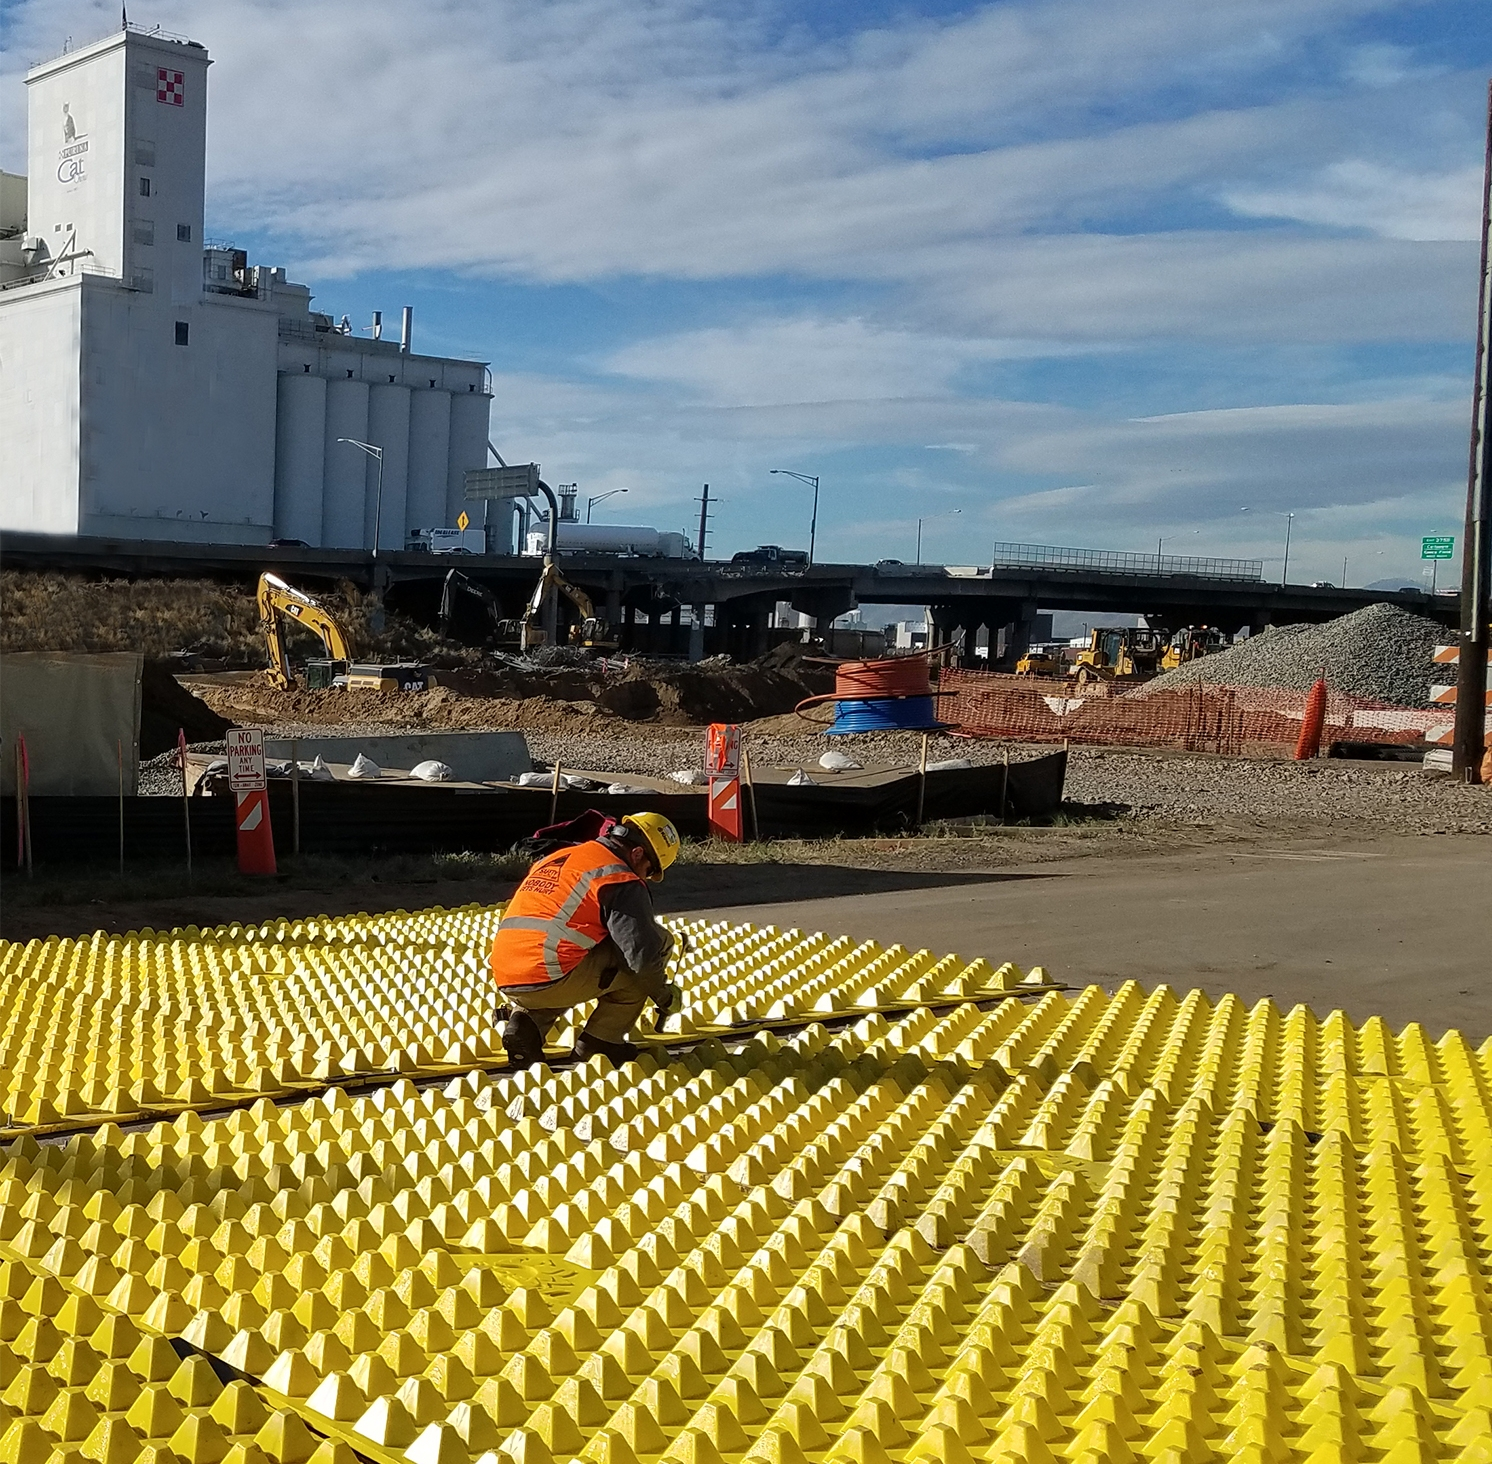 Cost Efficient   FODS Trackout control systems completely reusable, saving the cost of hundreds of tons of rip-rip per use. Since inspection, FODS has prevented over 100-million pounds of rock from being wasted.